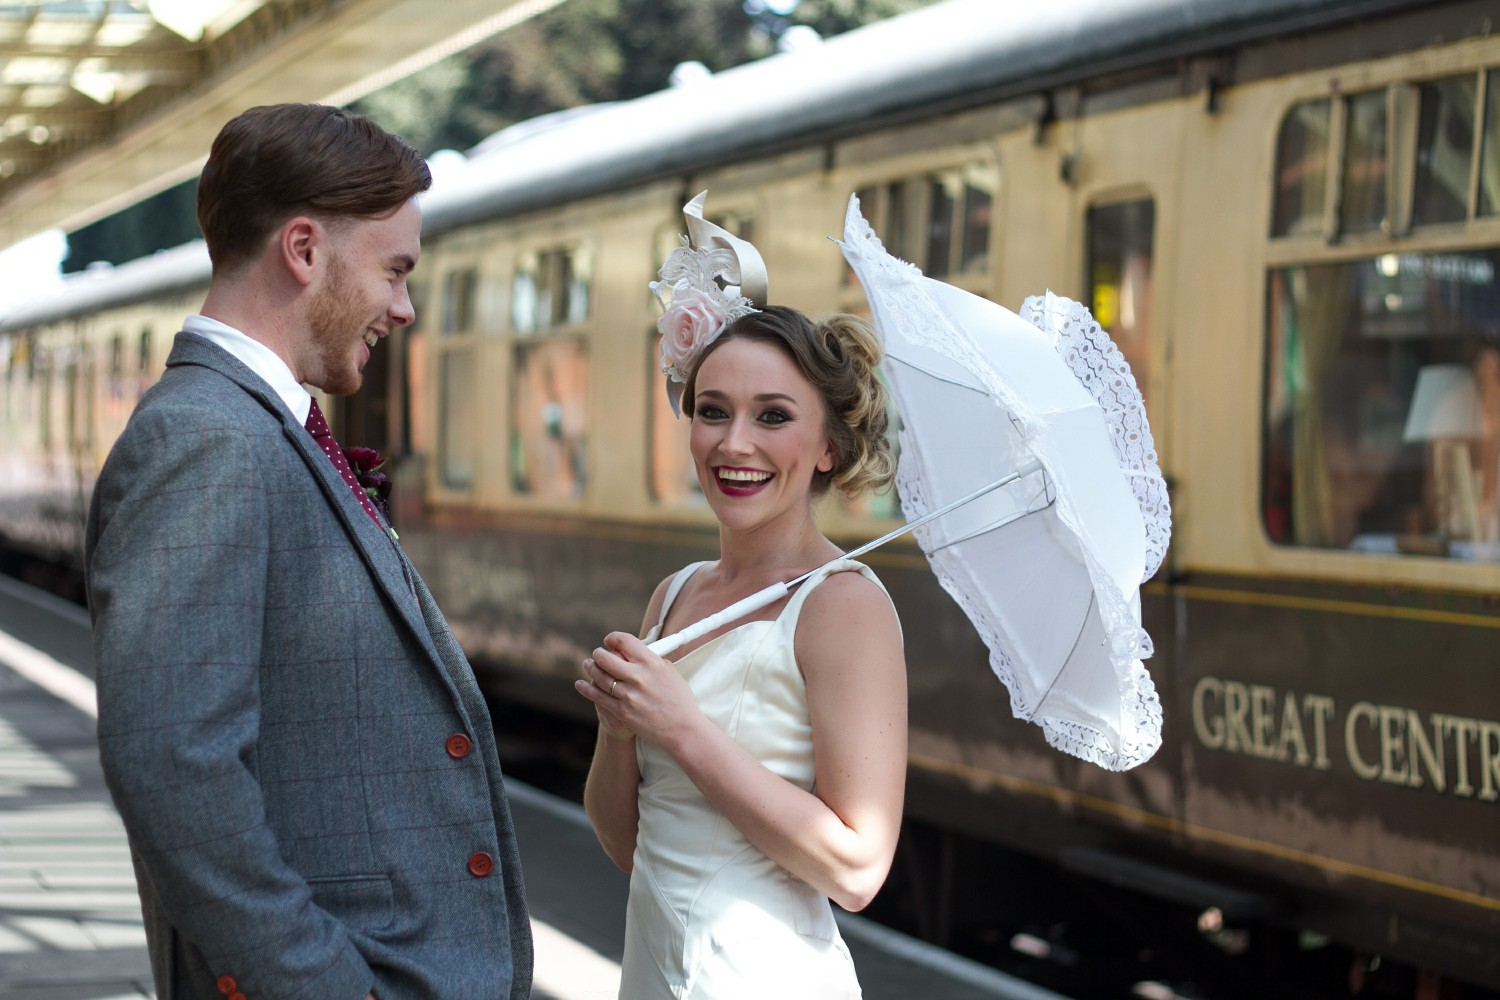 Iso Elegant Photography - Leicester wedding network - Railway wedding - vintage wedding 6